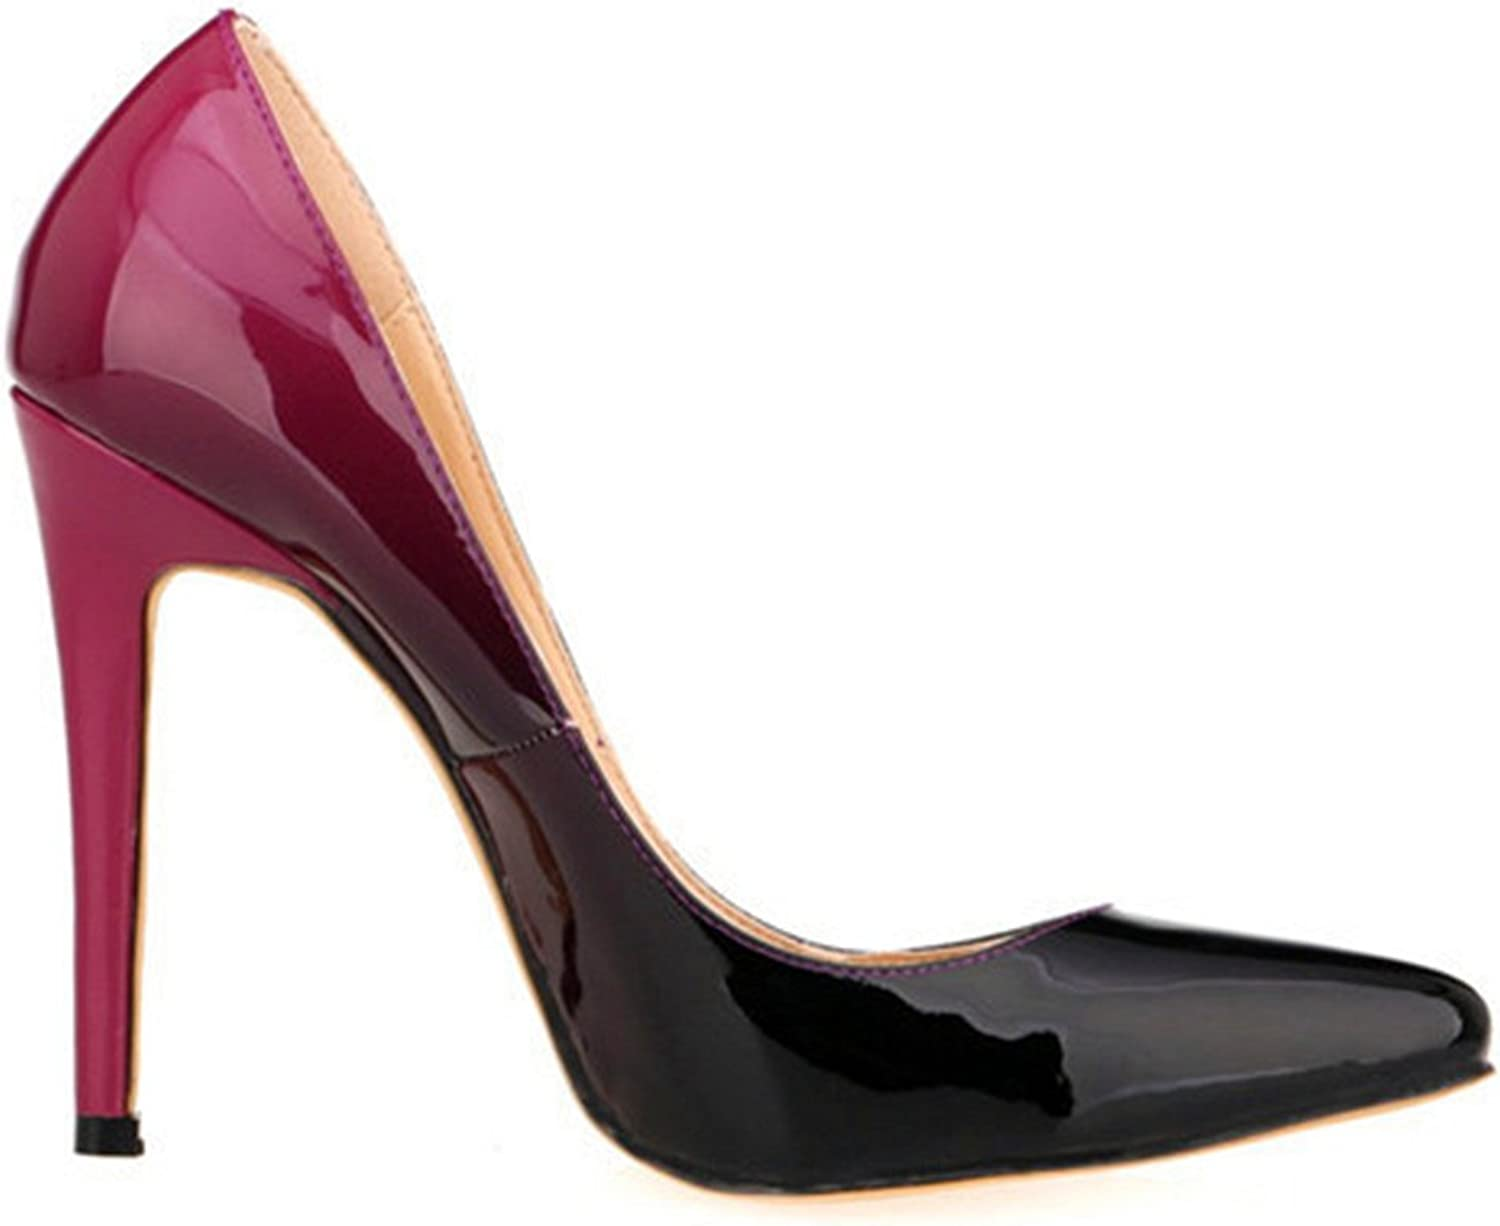 Owen Moll Women Pumps, Sexy Mixed colors PU Leather Pointed Toe Shallow Sandal shoes